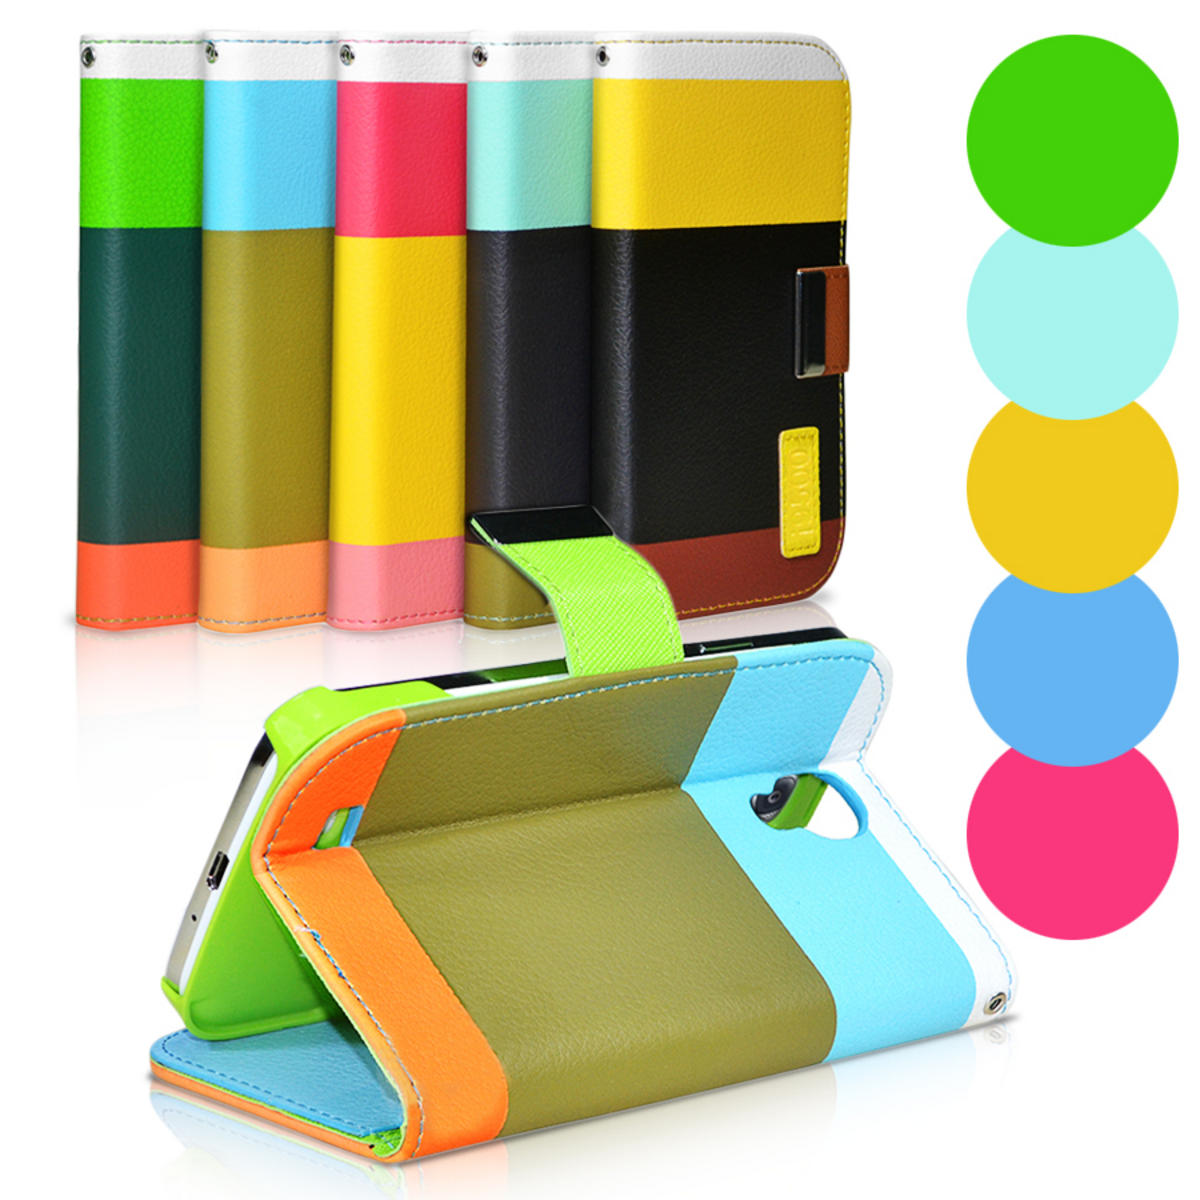 Hybrid Leather Wallet Flip Stand Case Cover For iPhone Note 1 - Turqoise